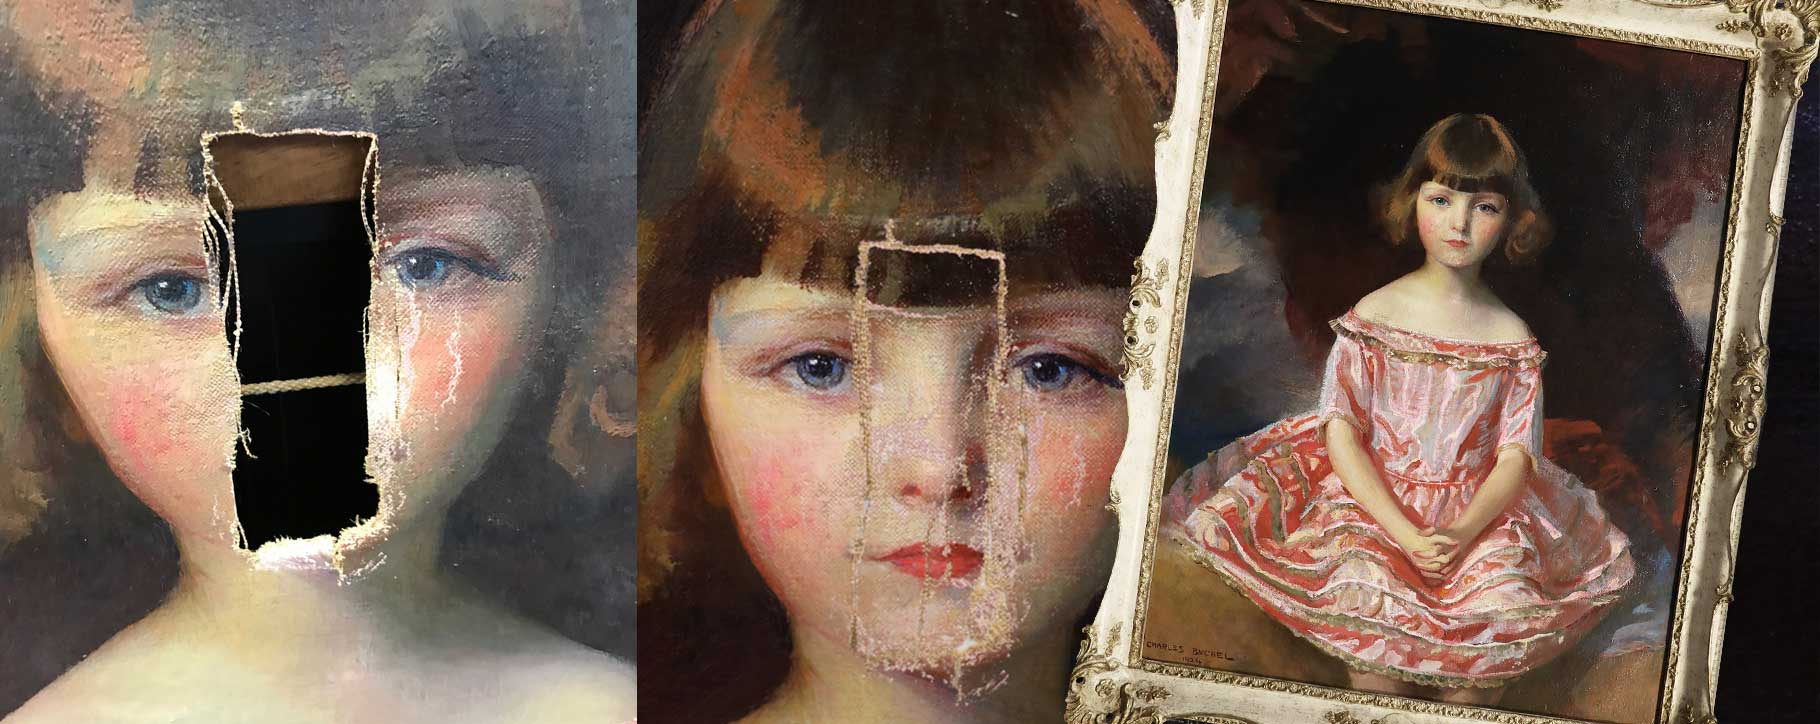 Before, during and after of damaged oil painting of girl